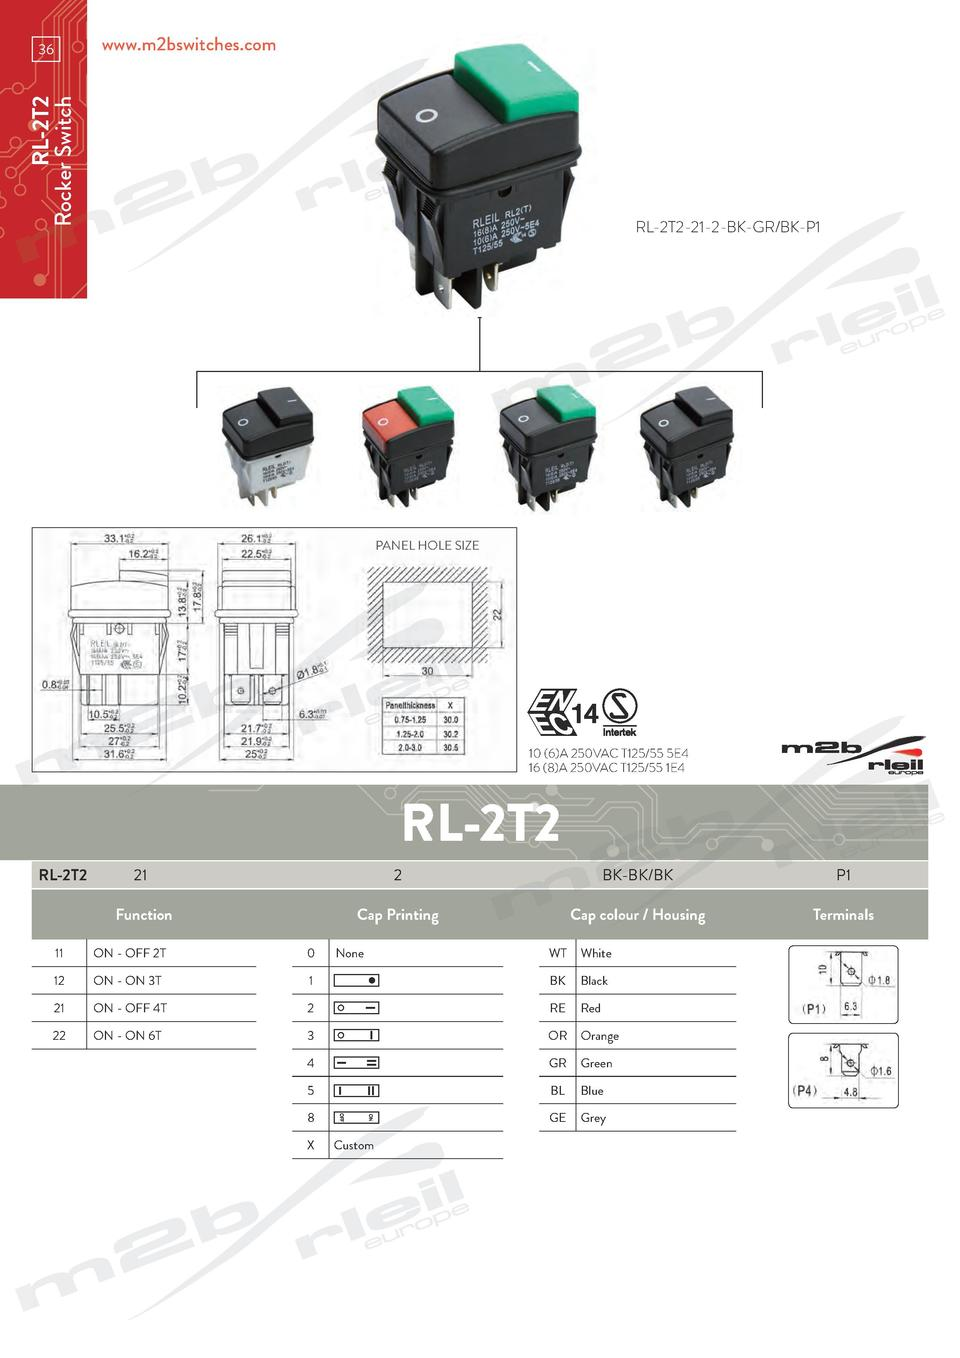 www.m2bswitches.com  RL-2T2 Rocker Switch  36  RL-2T2-21-2-BK-GR BK-P1  PANEL HOLE SIZE  10  6 A 250VAC T125 55 5E4 16  8 ...